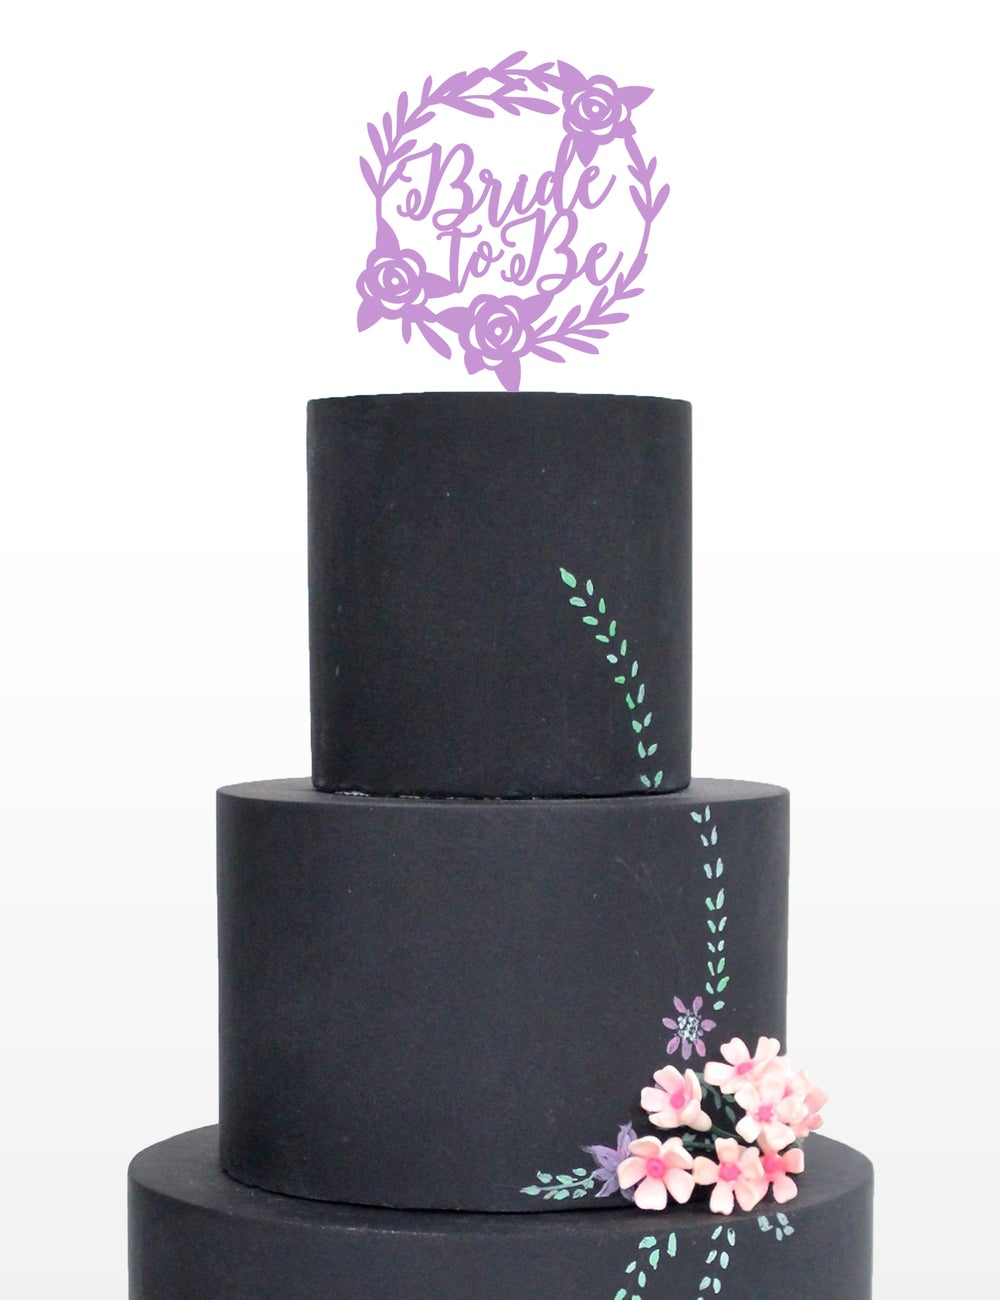 Image of Floral Bride to Be Cake Topper